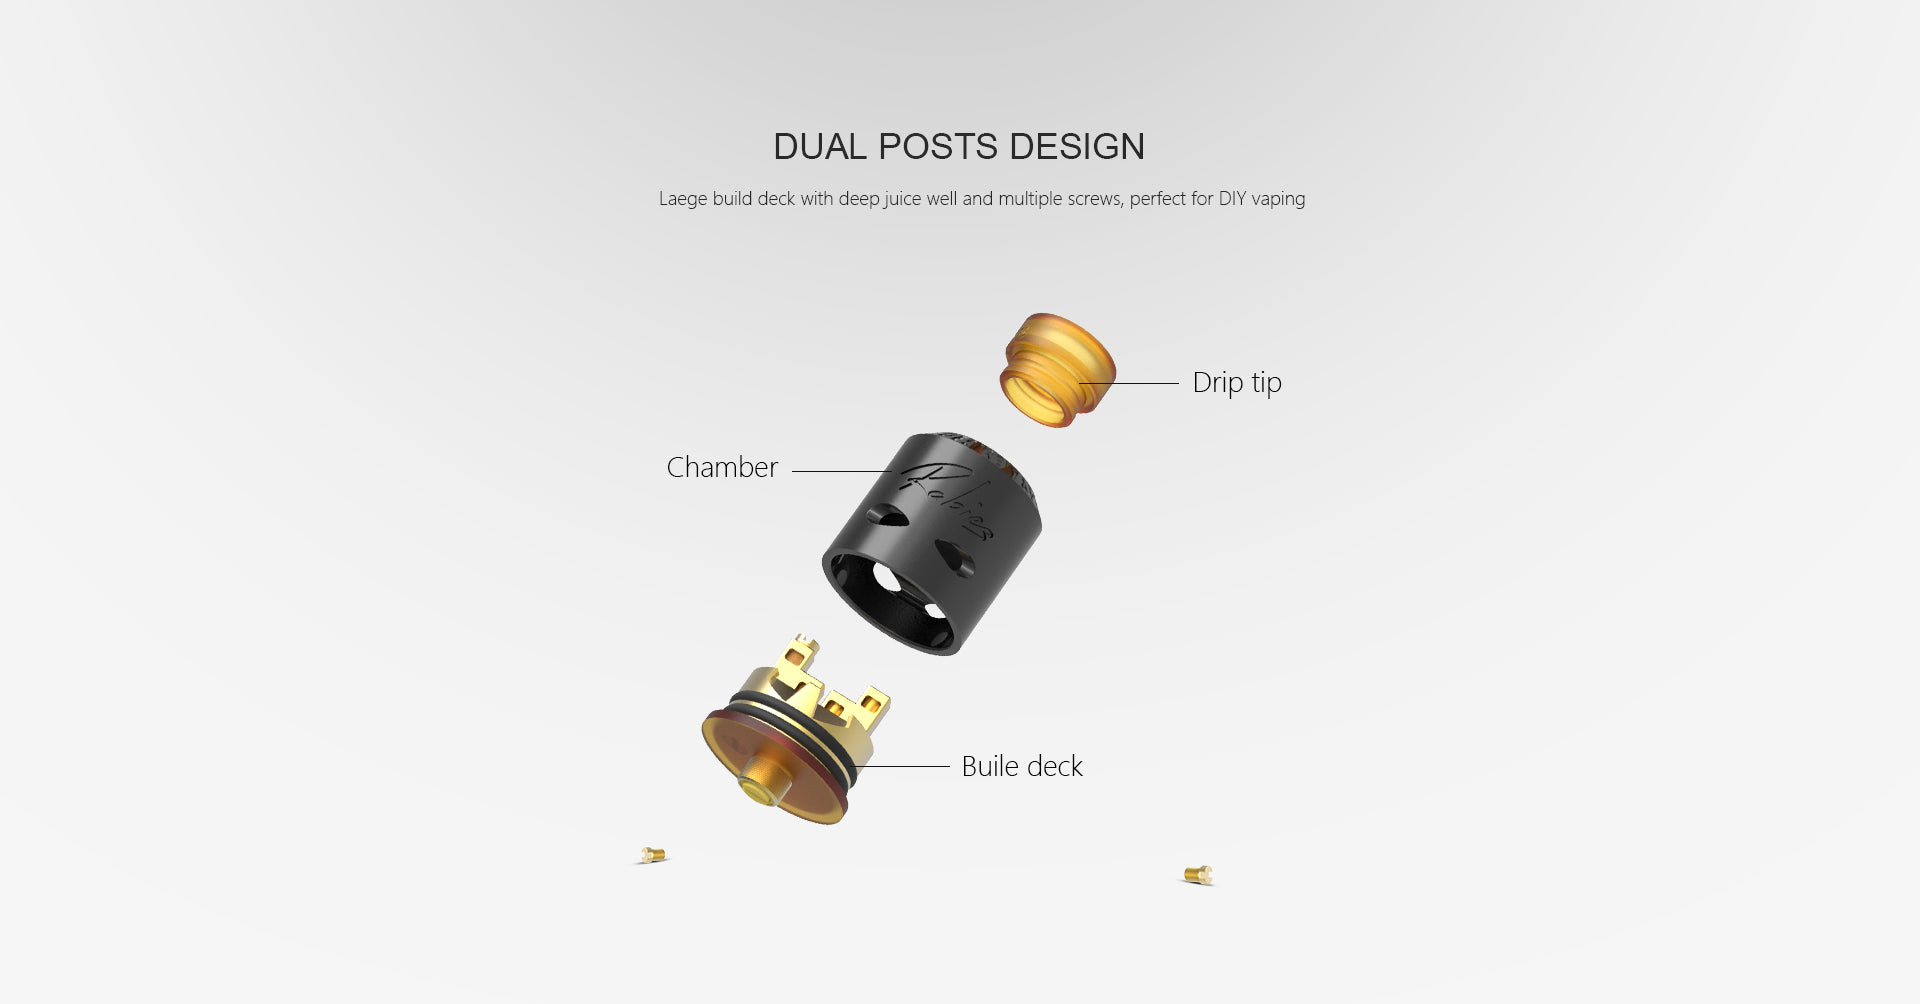 DUAL POSTS DESIGN                                  Laege build deck with deep juice well and multiple screws, perfect for DIY vaping                     Drip tip    Chamber     Buile deck